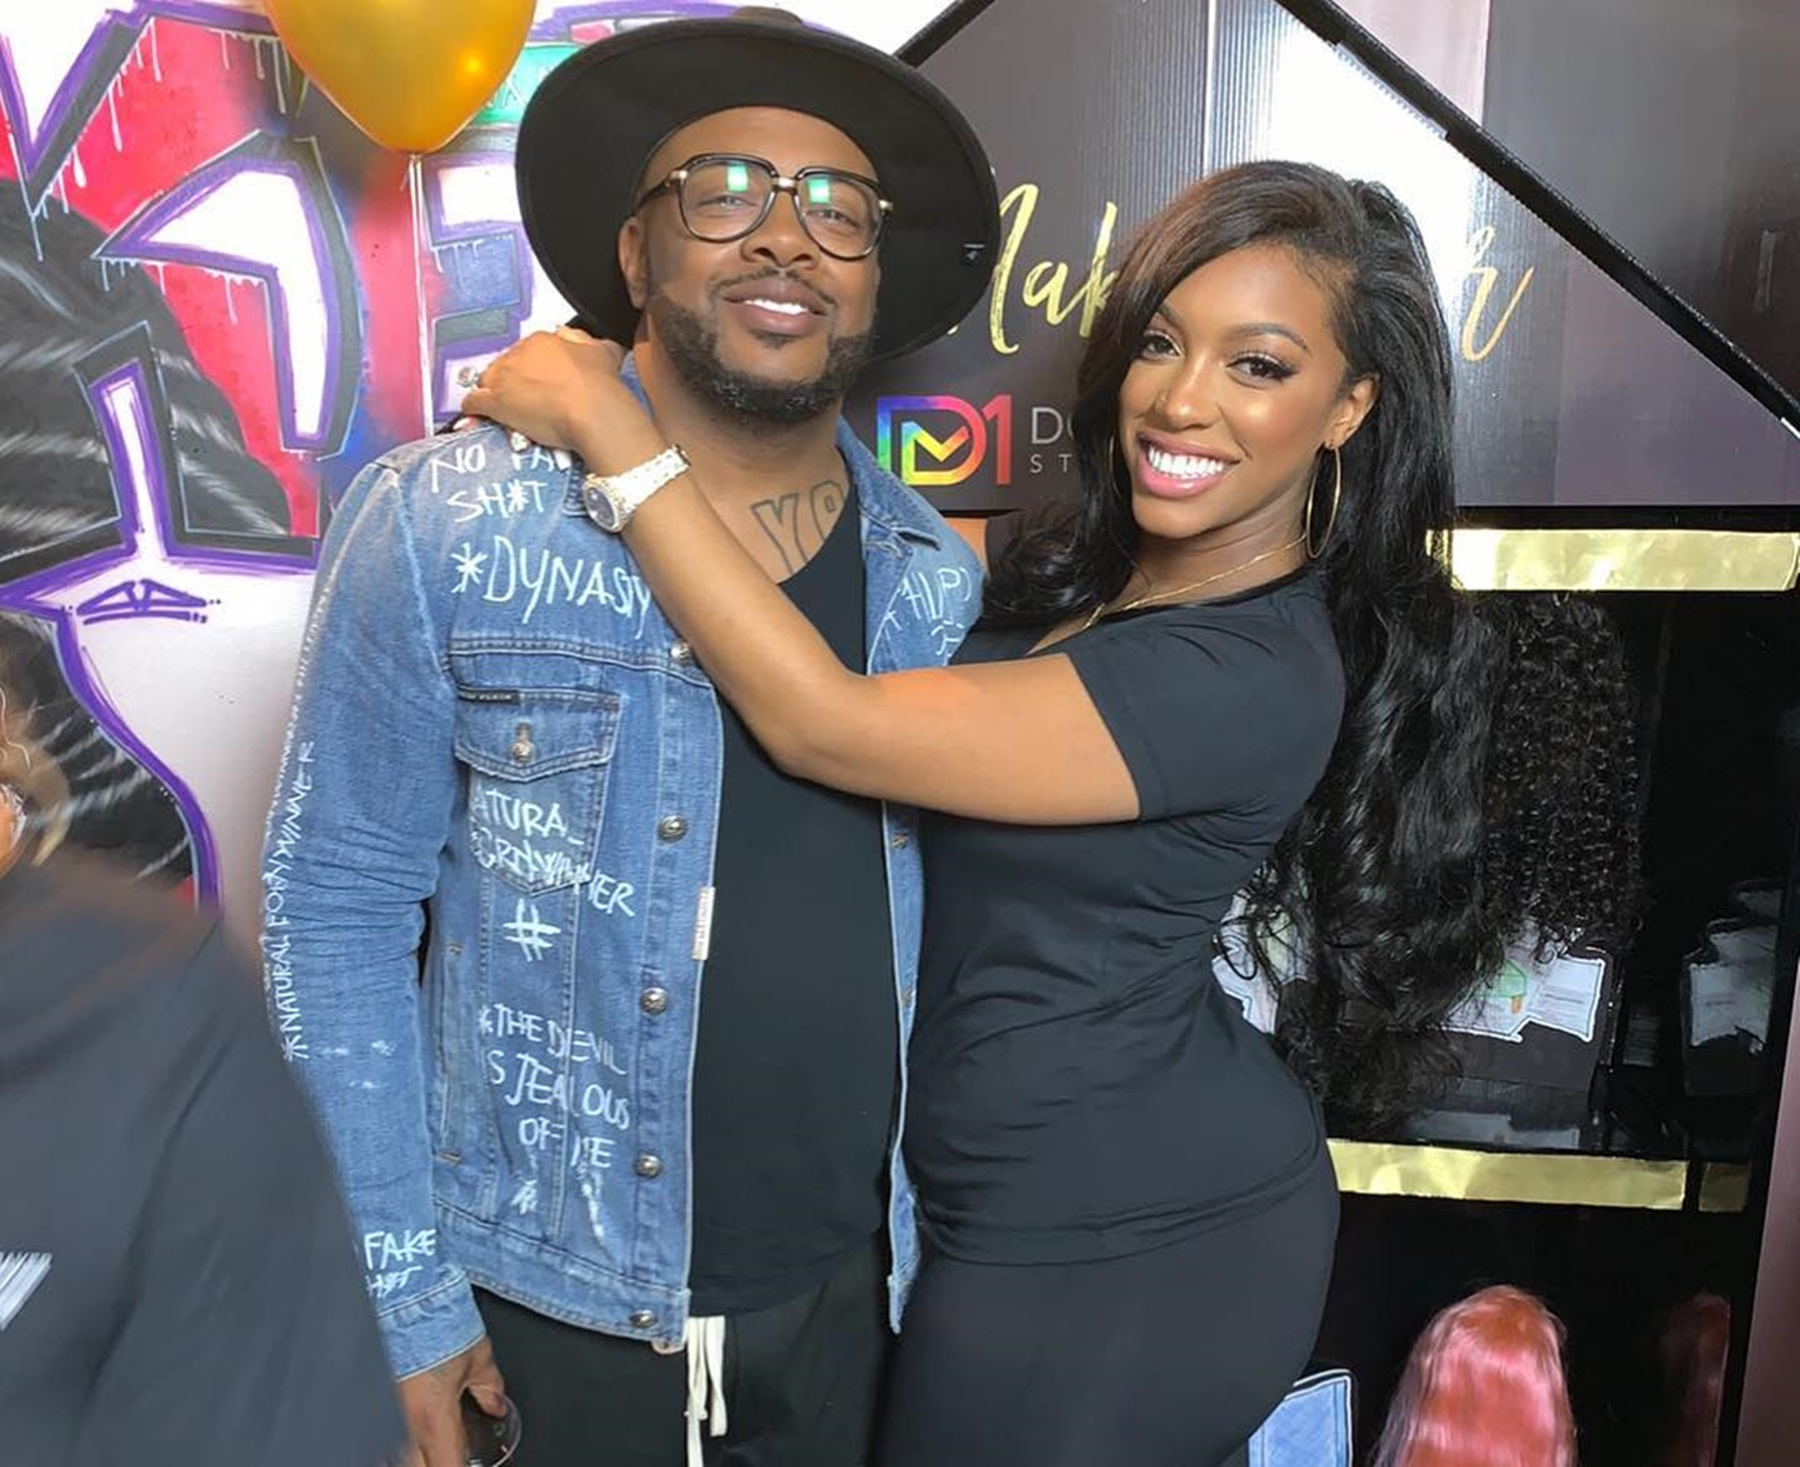 porsha-williams-shows-off-her-mama-curves-in-tight-white-dress-and-sends-fiery-message-to-the-hater-who-body-shamed-her-while-she-was-pregnant